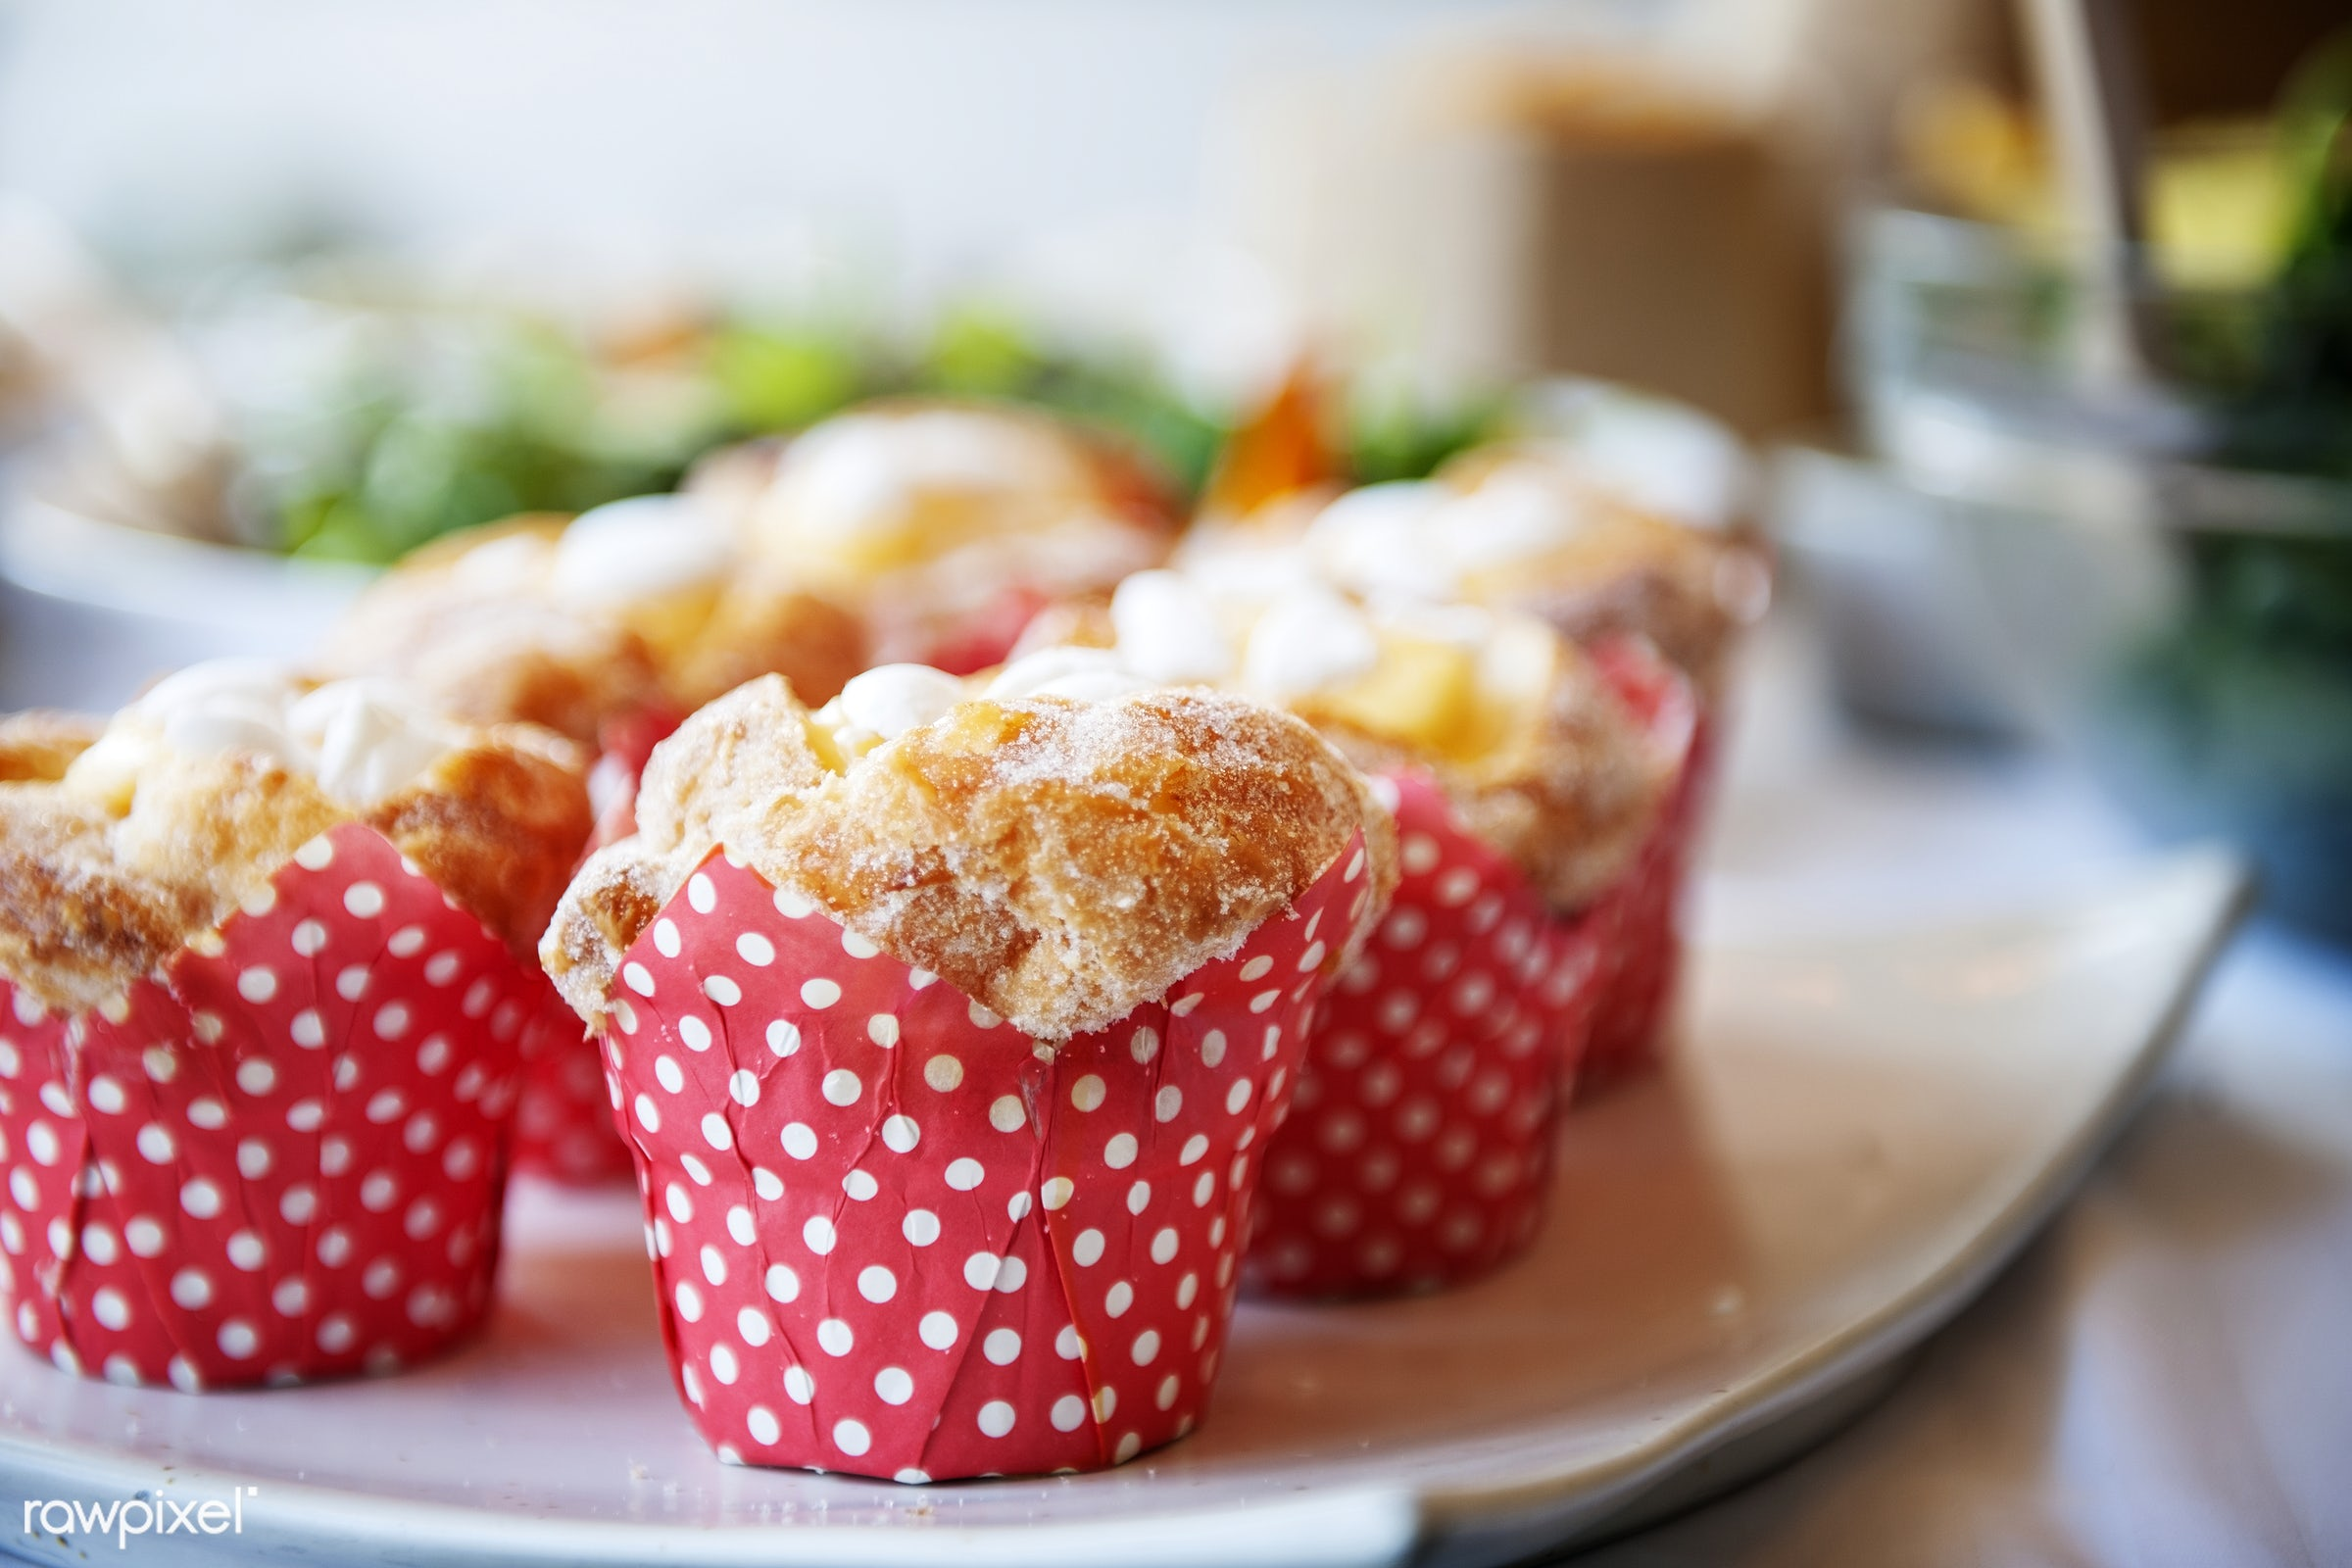 Fresh baked muffin - cake, catering, bake, baked, cafe, closeup, cup cake, dessert, eat, edible, event, food, fresh, muffin...